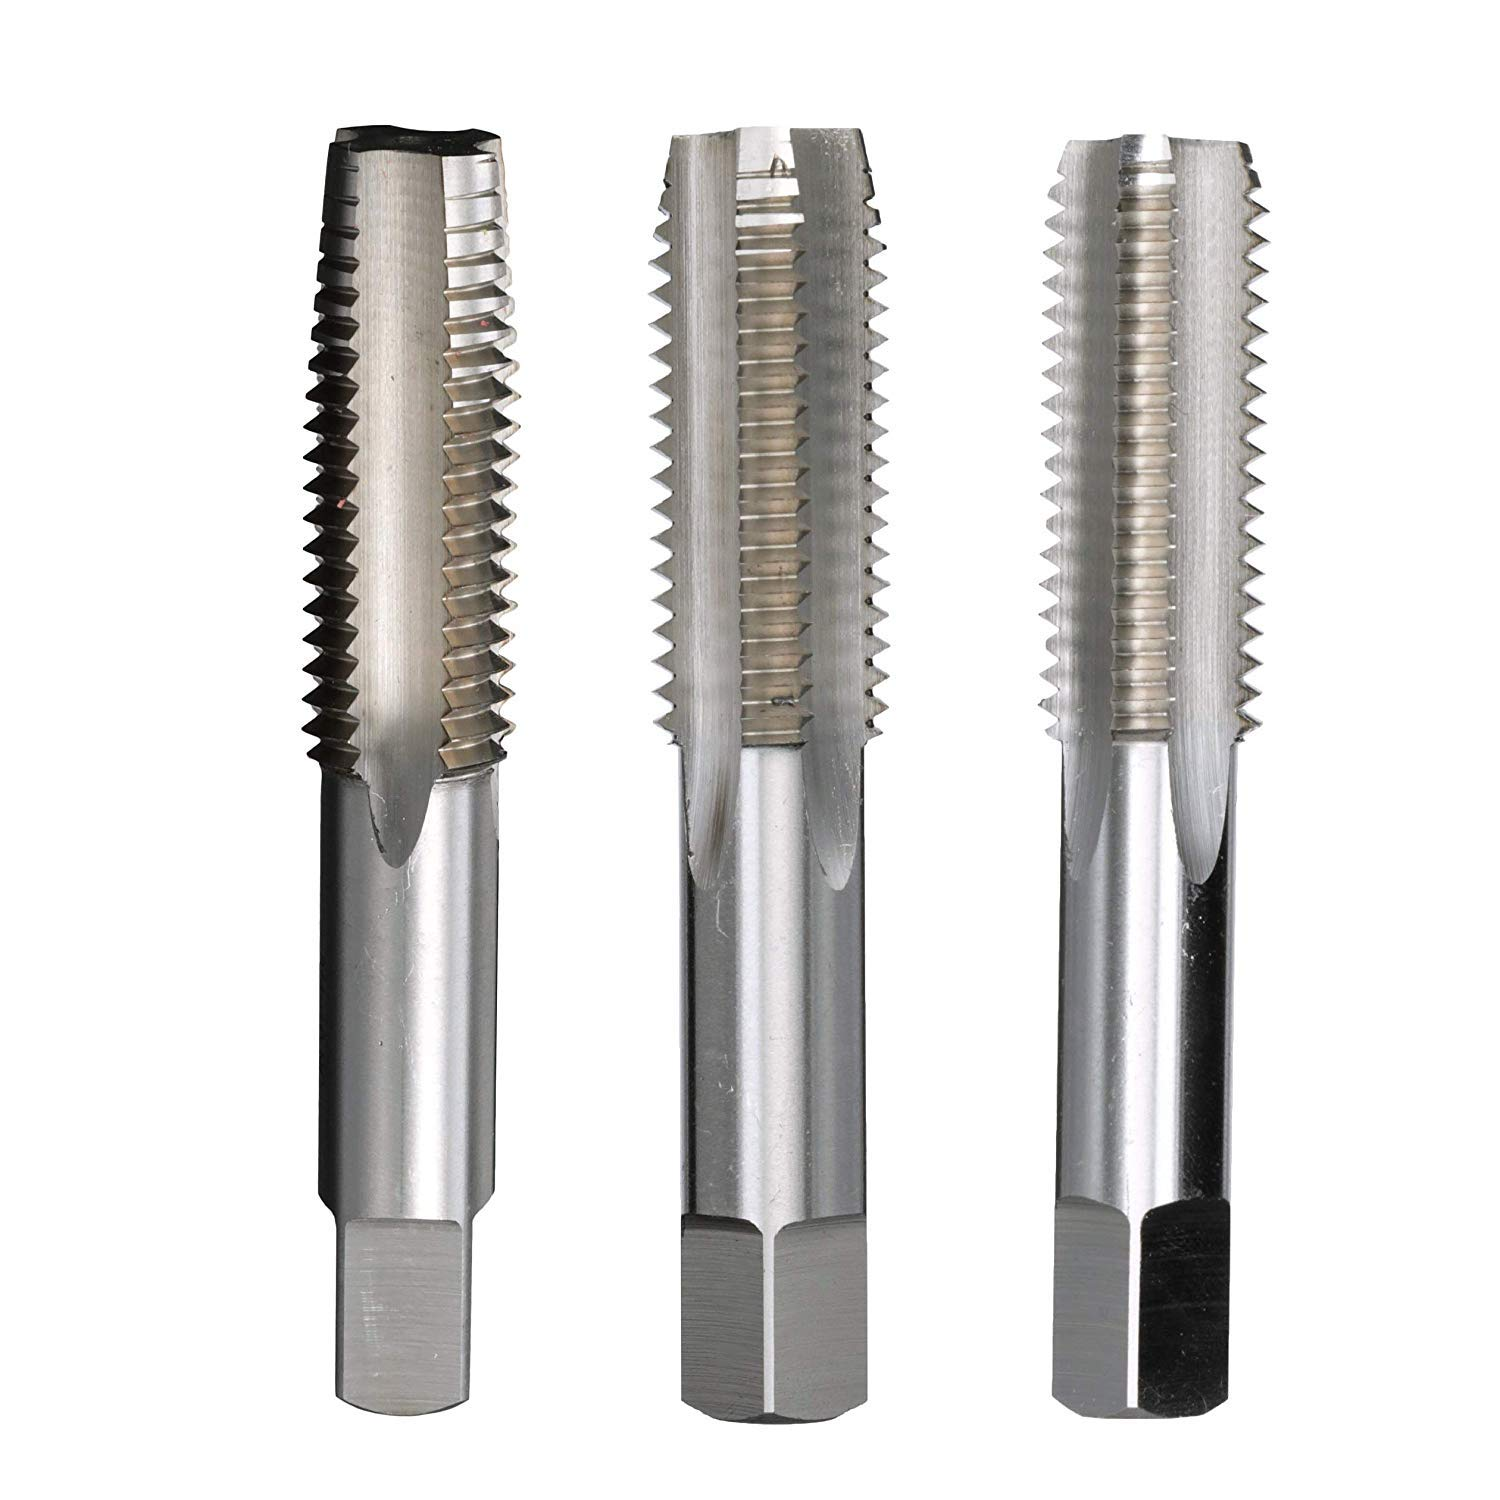 Drill America 1-72 High Speed Steel Tap Set, T/A Series by Drill America